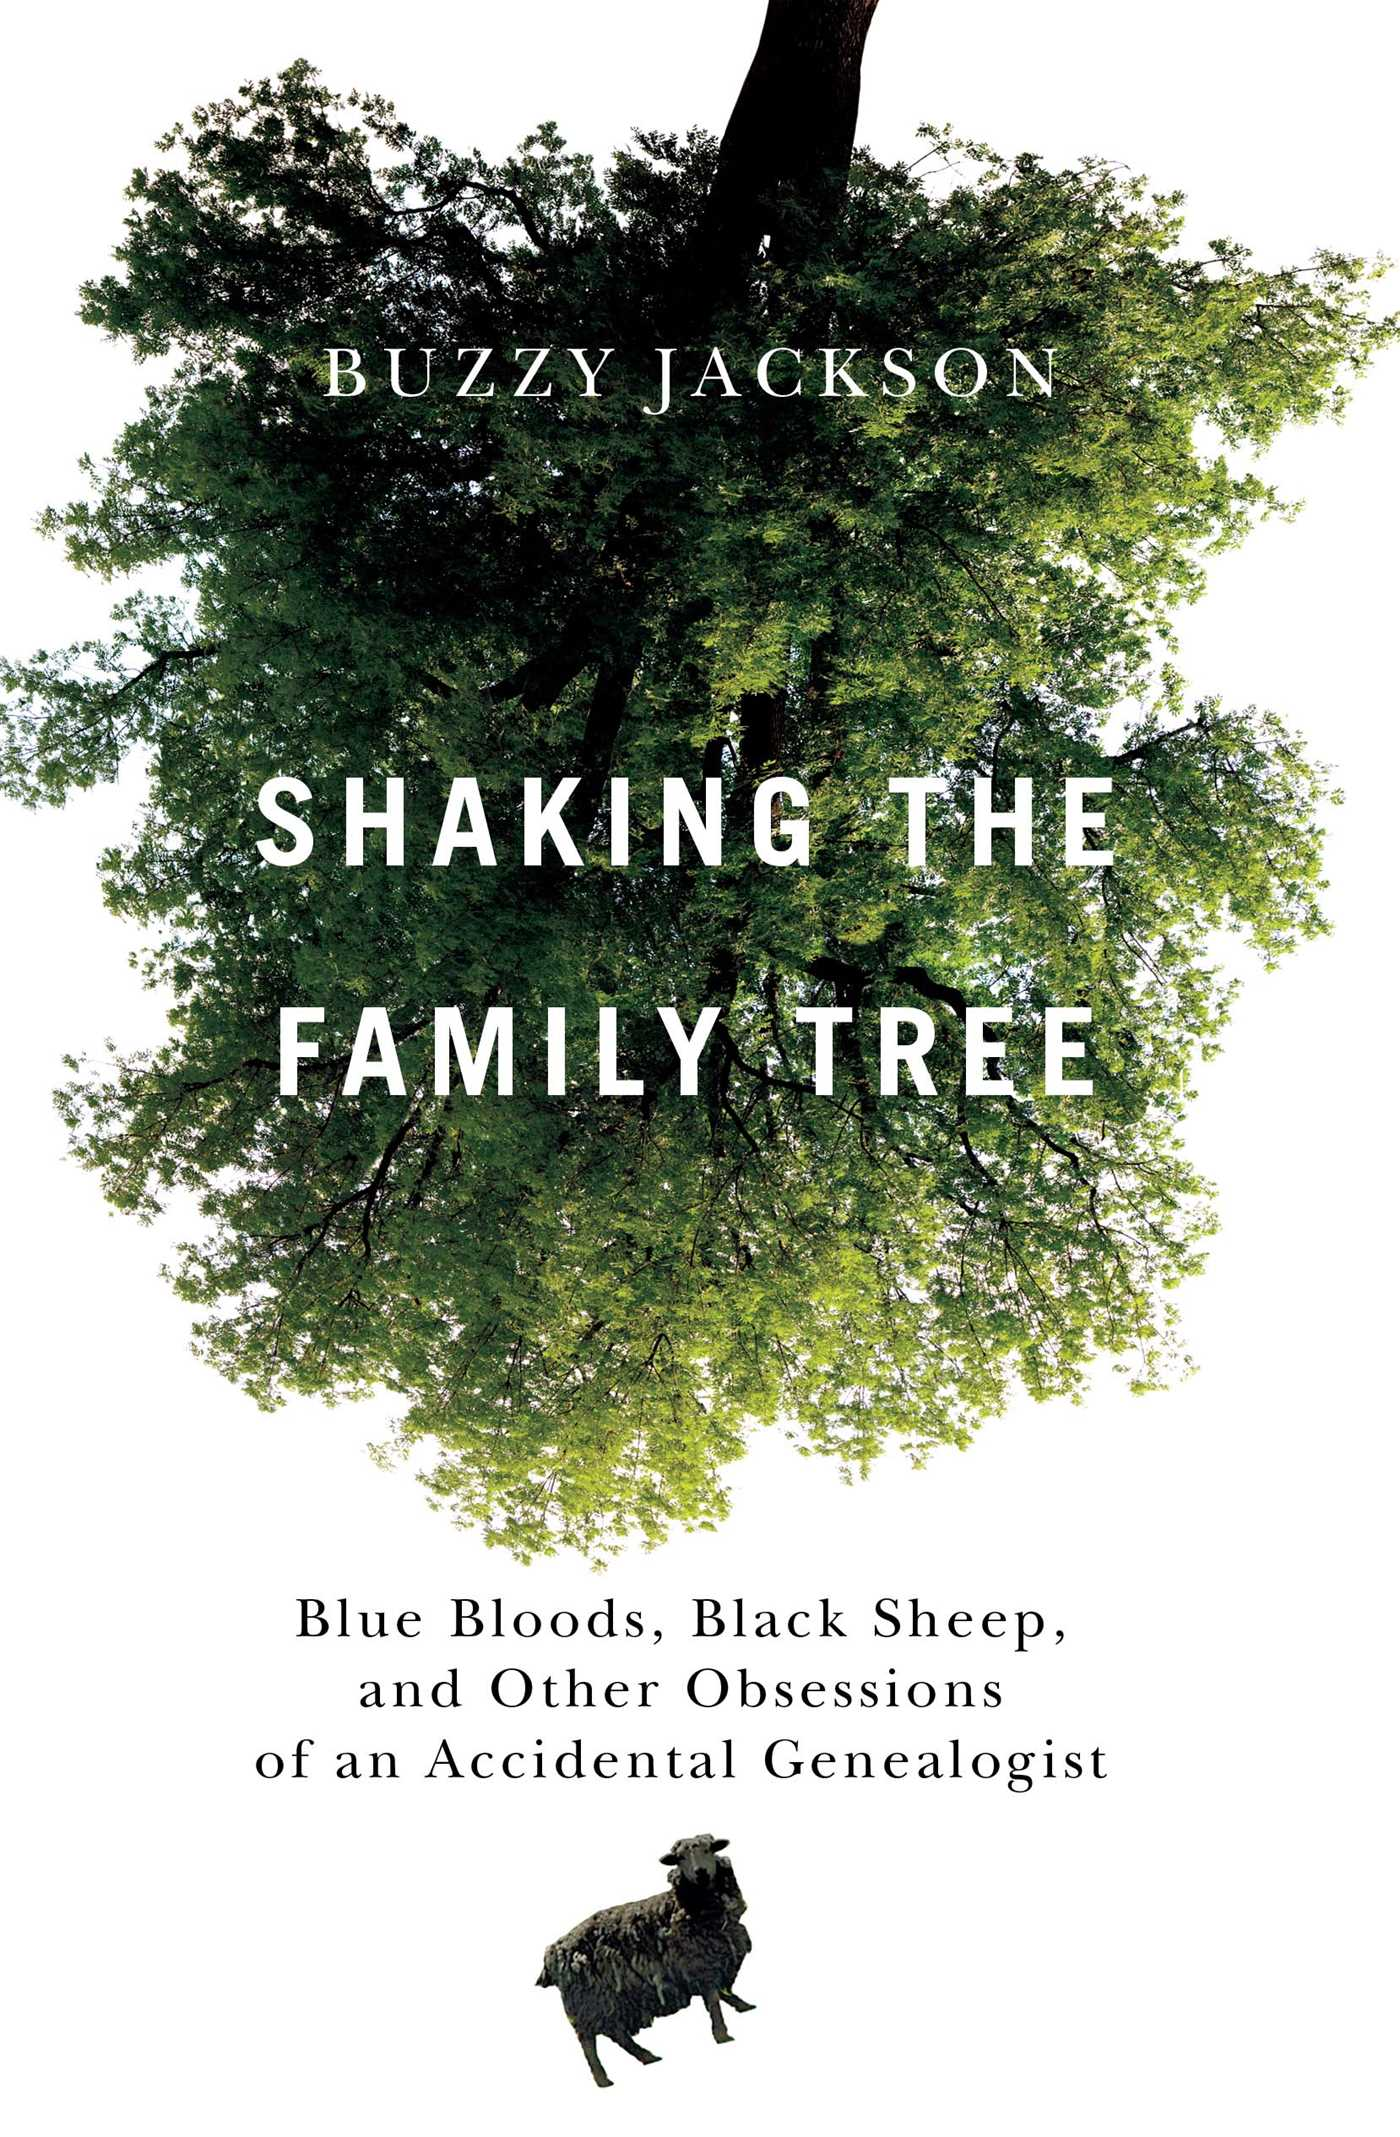 Shaking-the-family-tree-9781439149263_hr